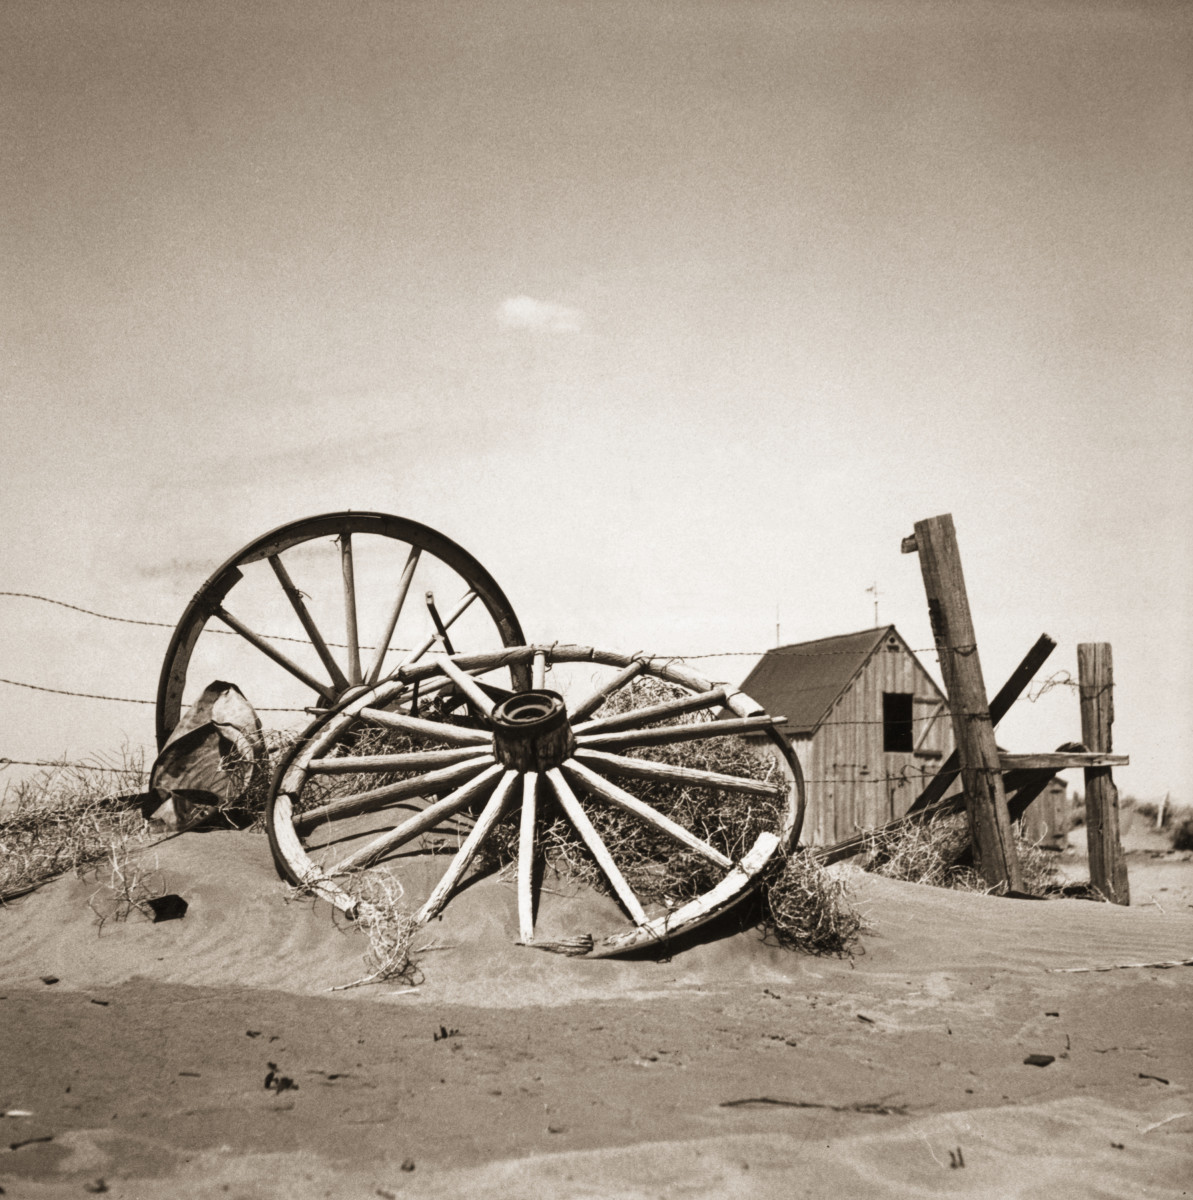 10 Things You May Not Know About the Dust Bowl - HISTORY